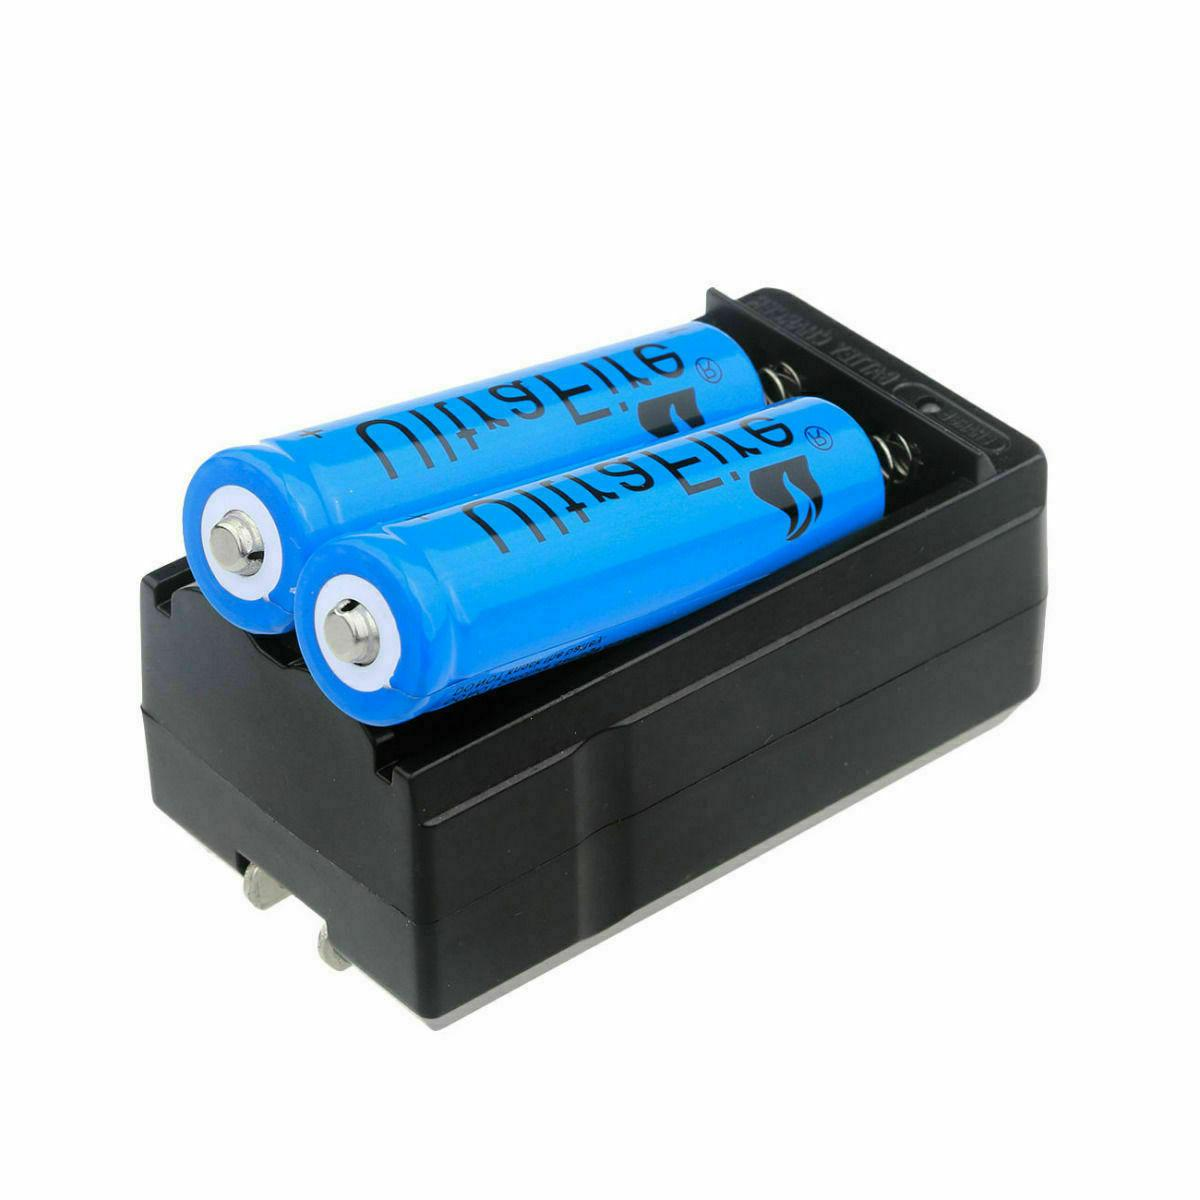 UltraFire 18650 Battery 5000mAh Li-ion LED Flashlight